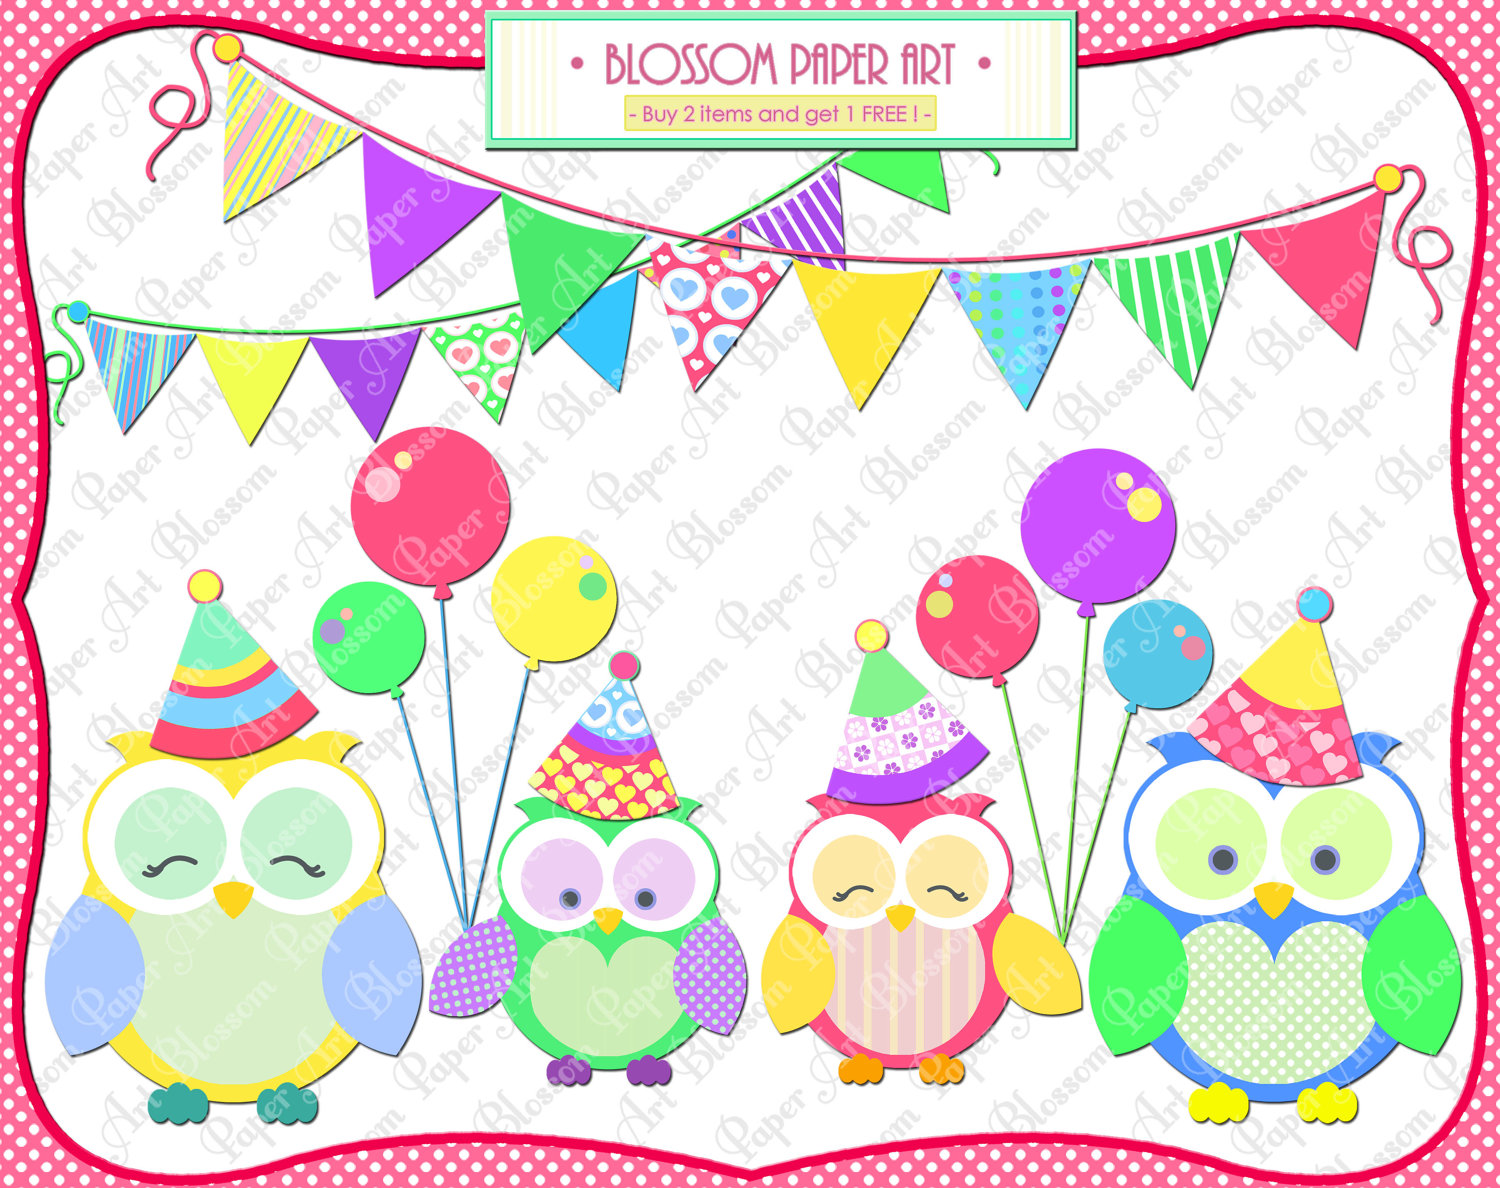 Owls Party Clipart Clip Art Birthday By Blossompaperart On Etsy